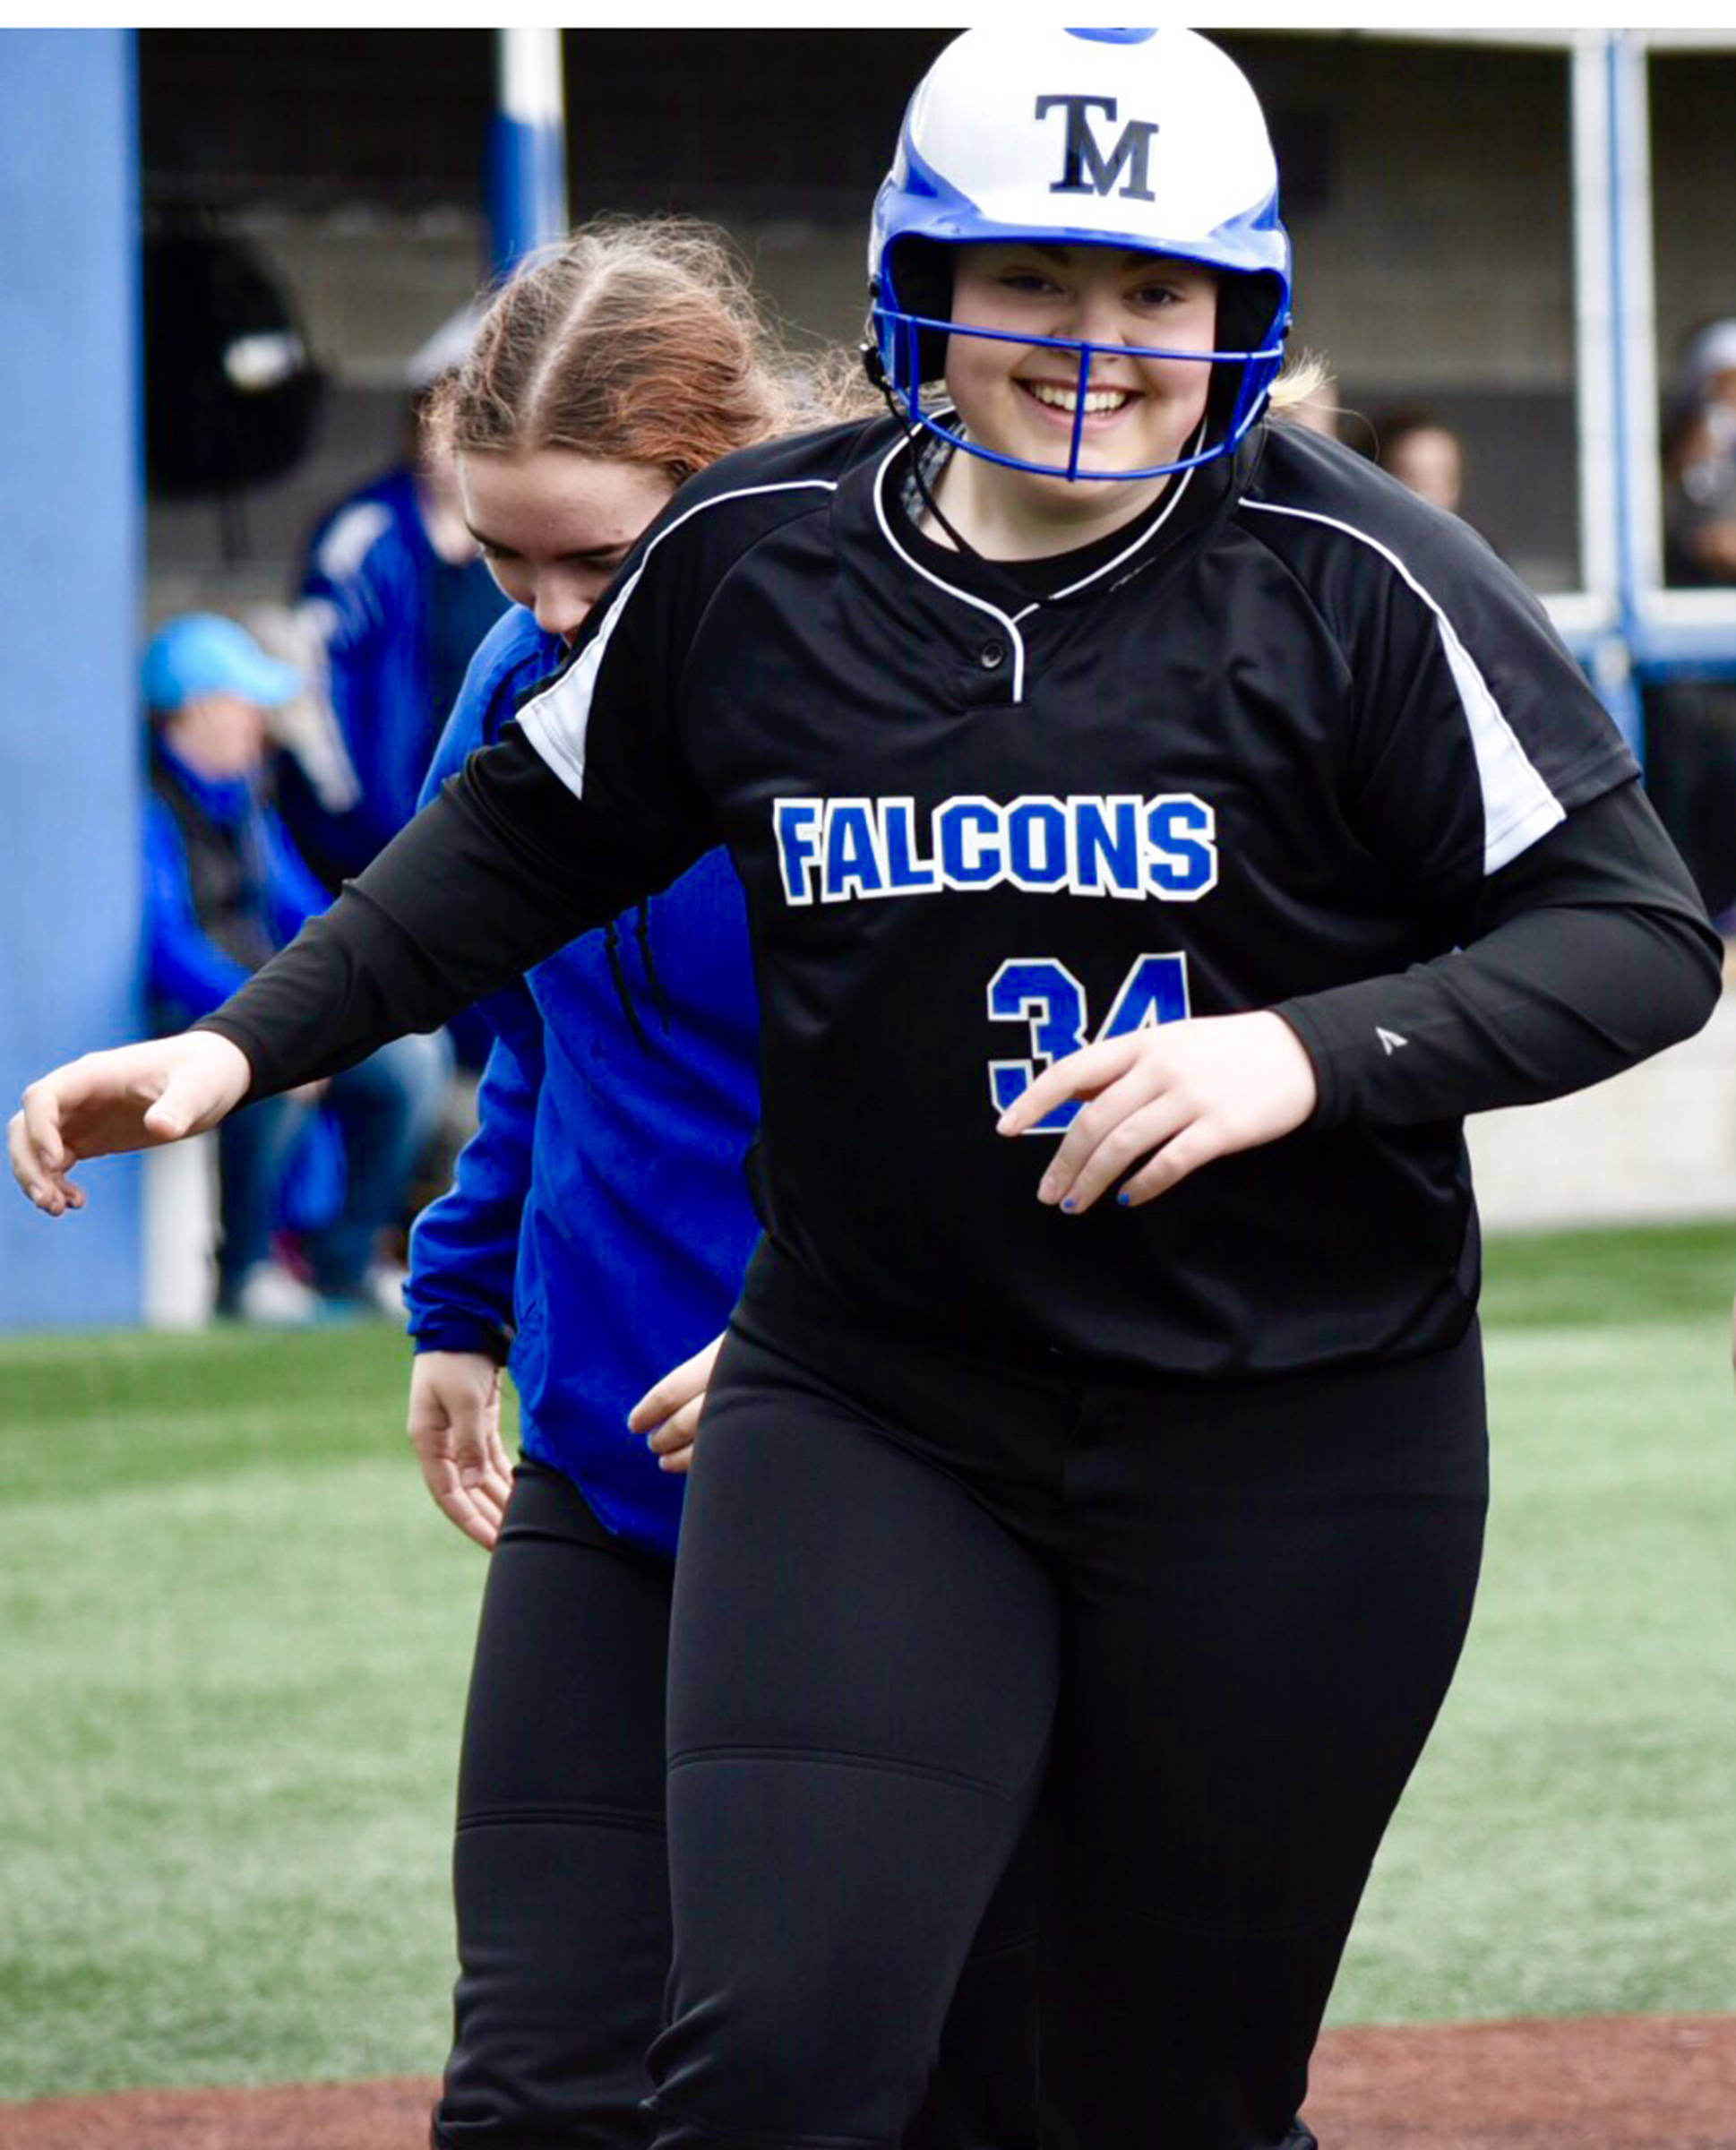 Thunder Mountain High School freshman Aspen Kasper runs across home plate after hitting a home run in the top of the third inning against Sitka at Moller Field on Friday, April 26, 2019. (Courtesy Photo | Sharla Hayes)